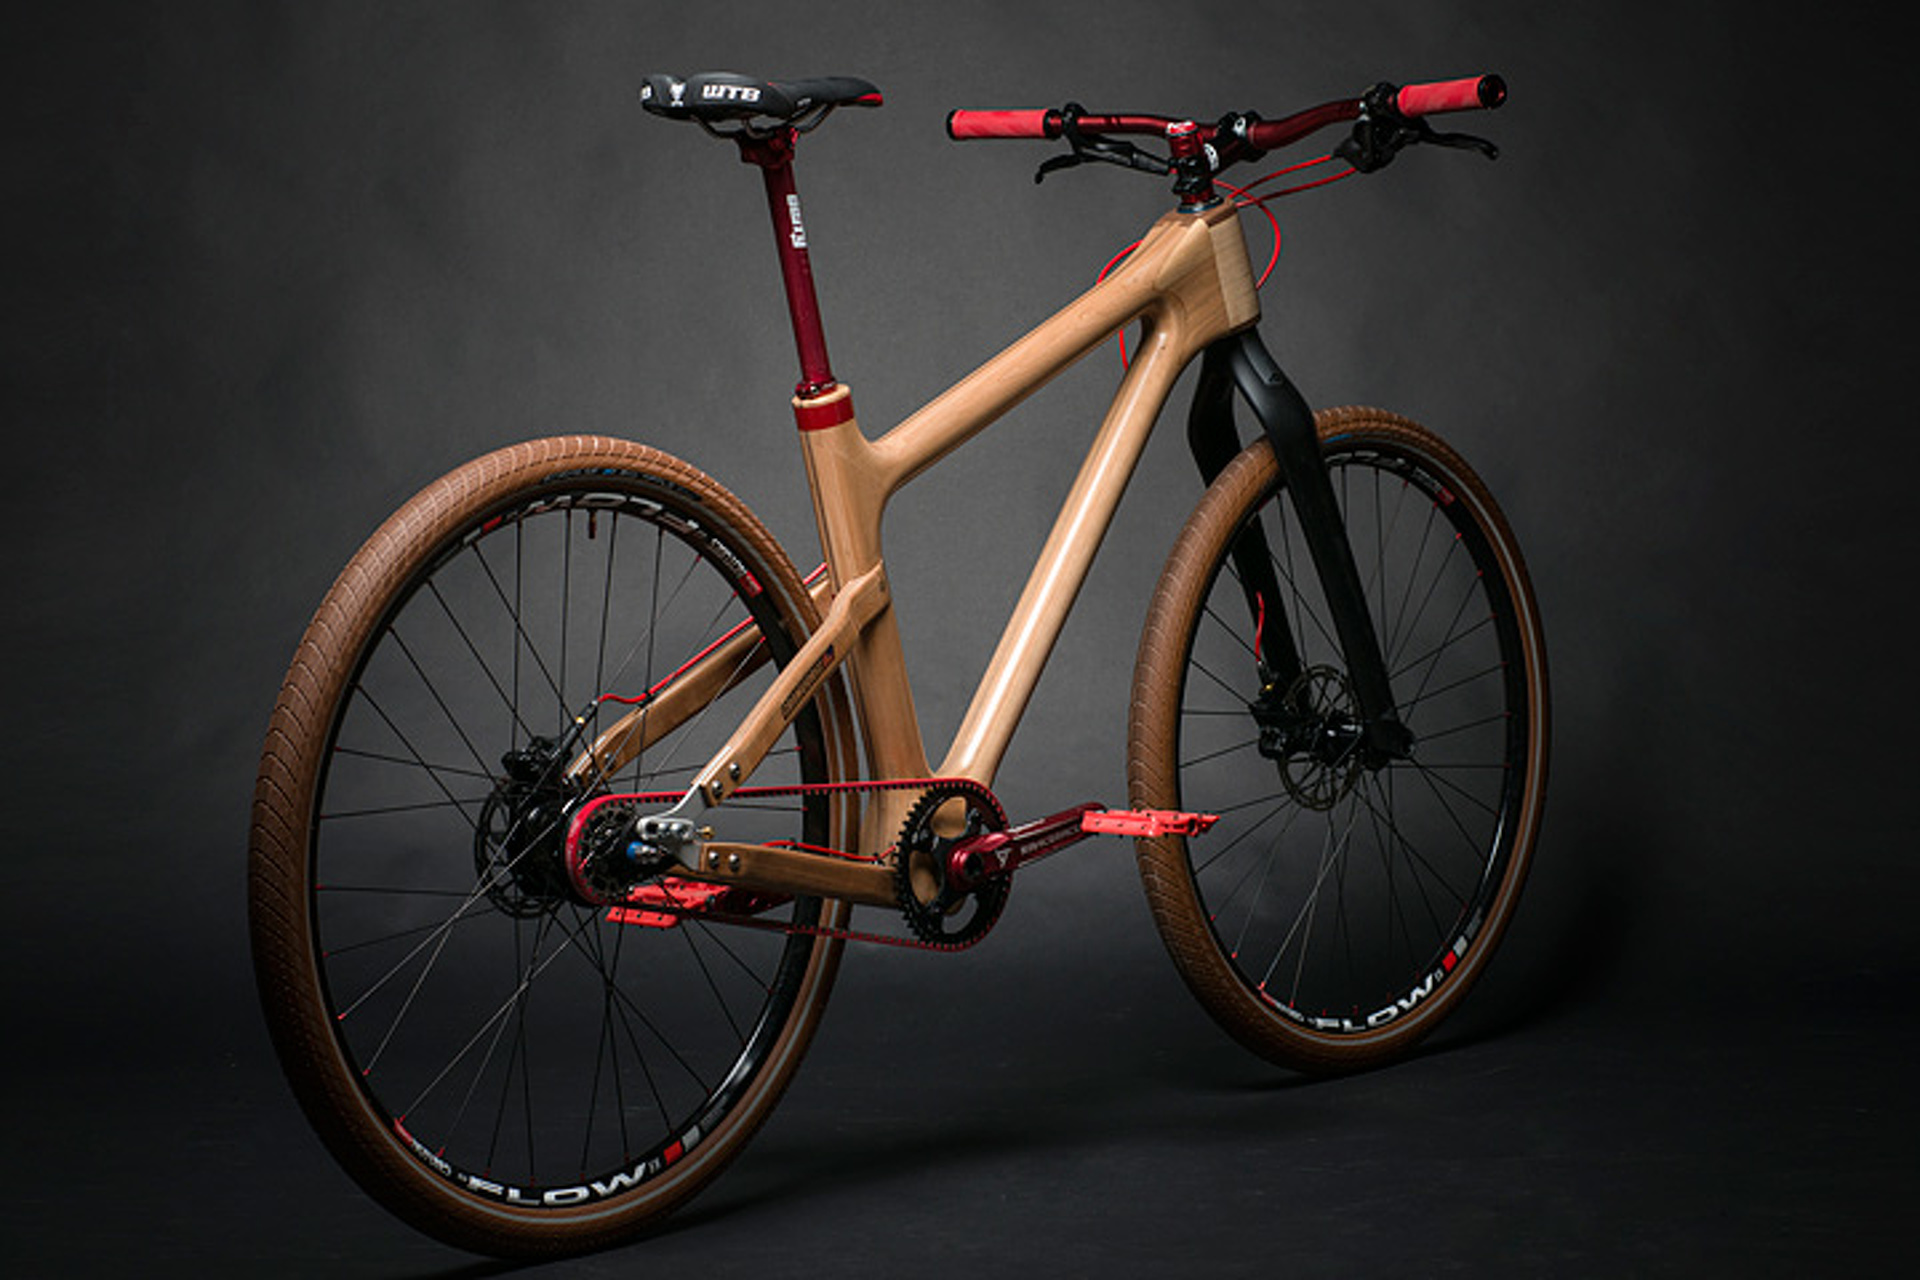 This Grainworks Bicycle Breaks the Mold — It's Made of Wood